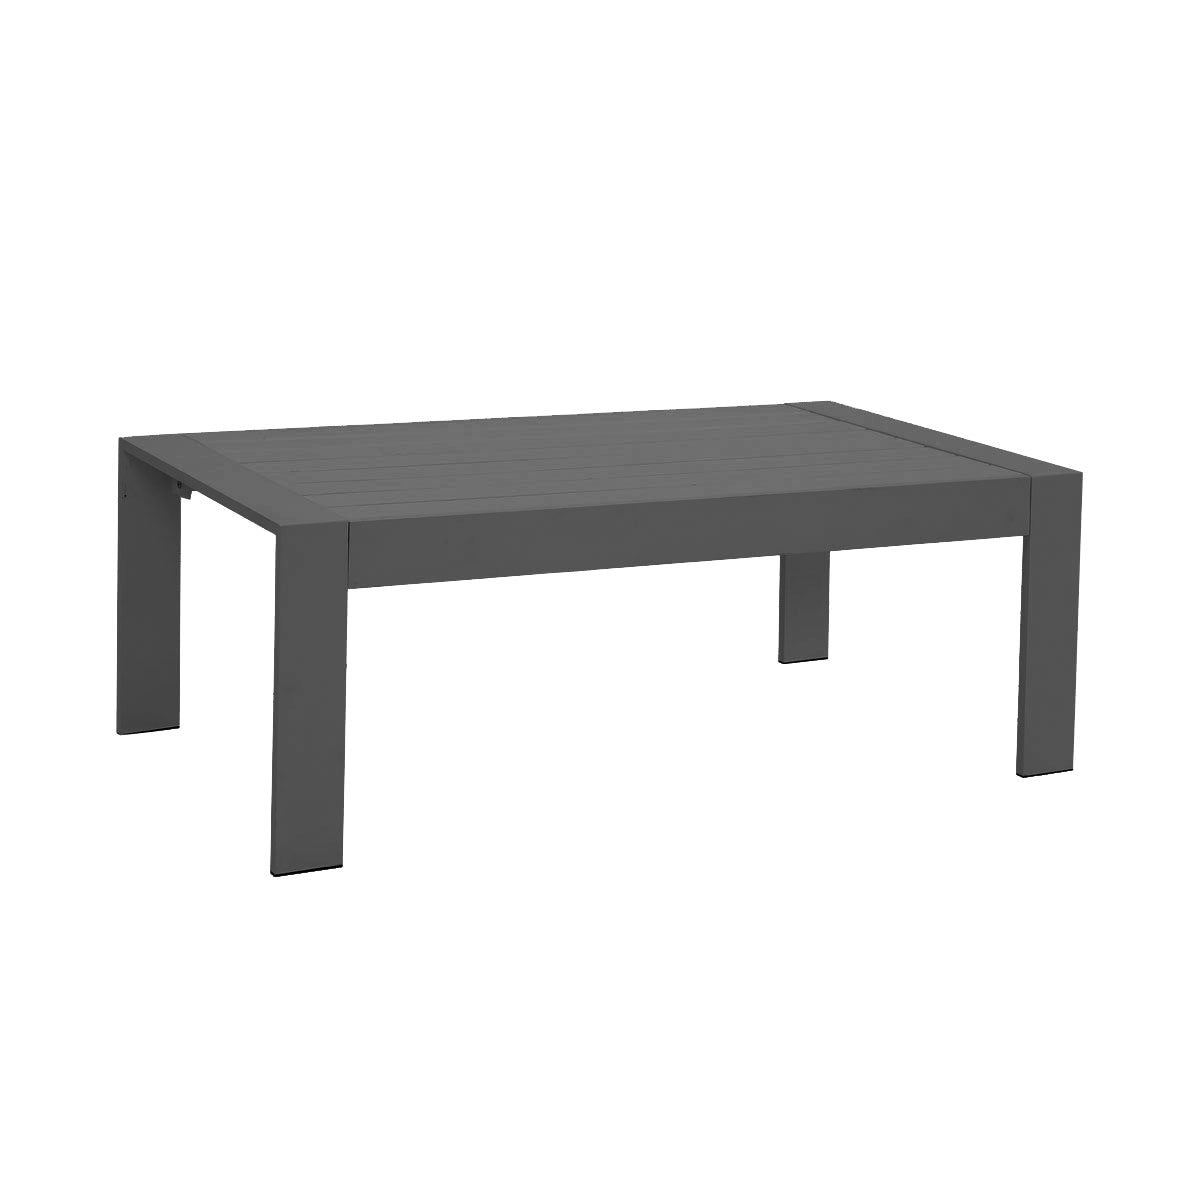 Paris Charcoal Aluminium Outdoor Coffee Table with Polywood Top (100x50cm)